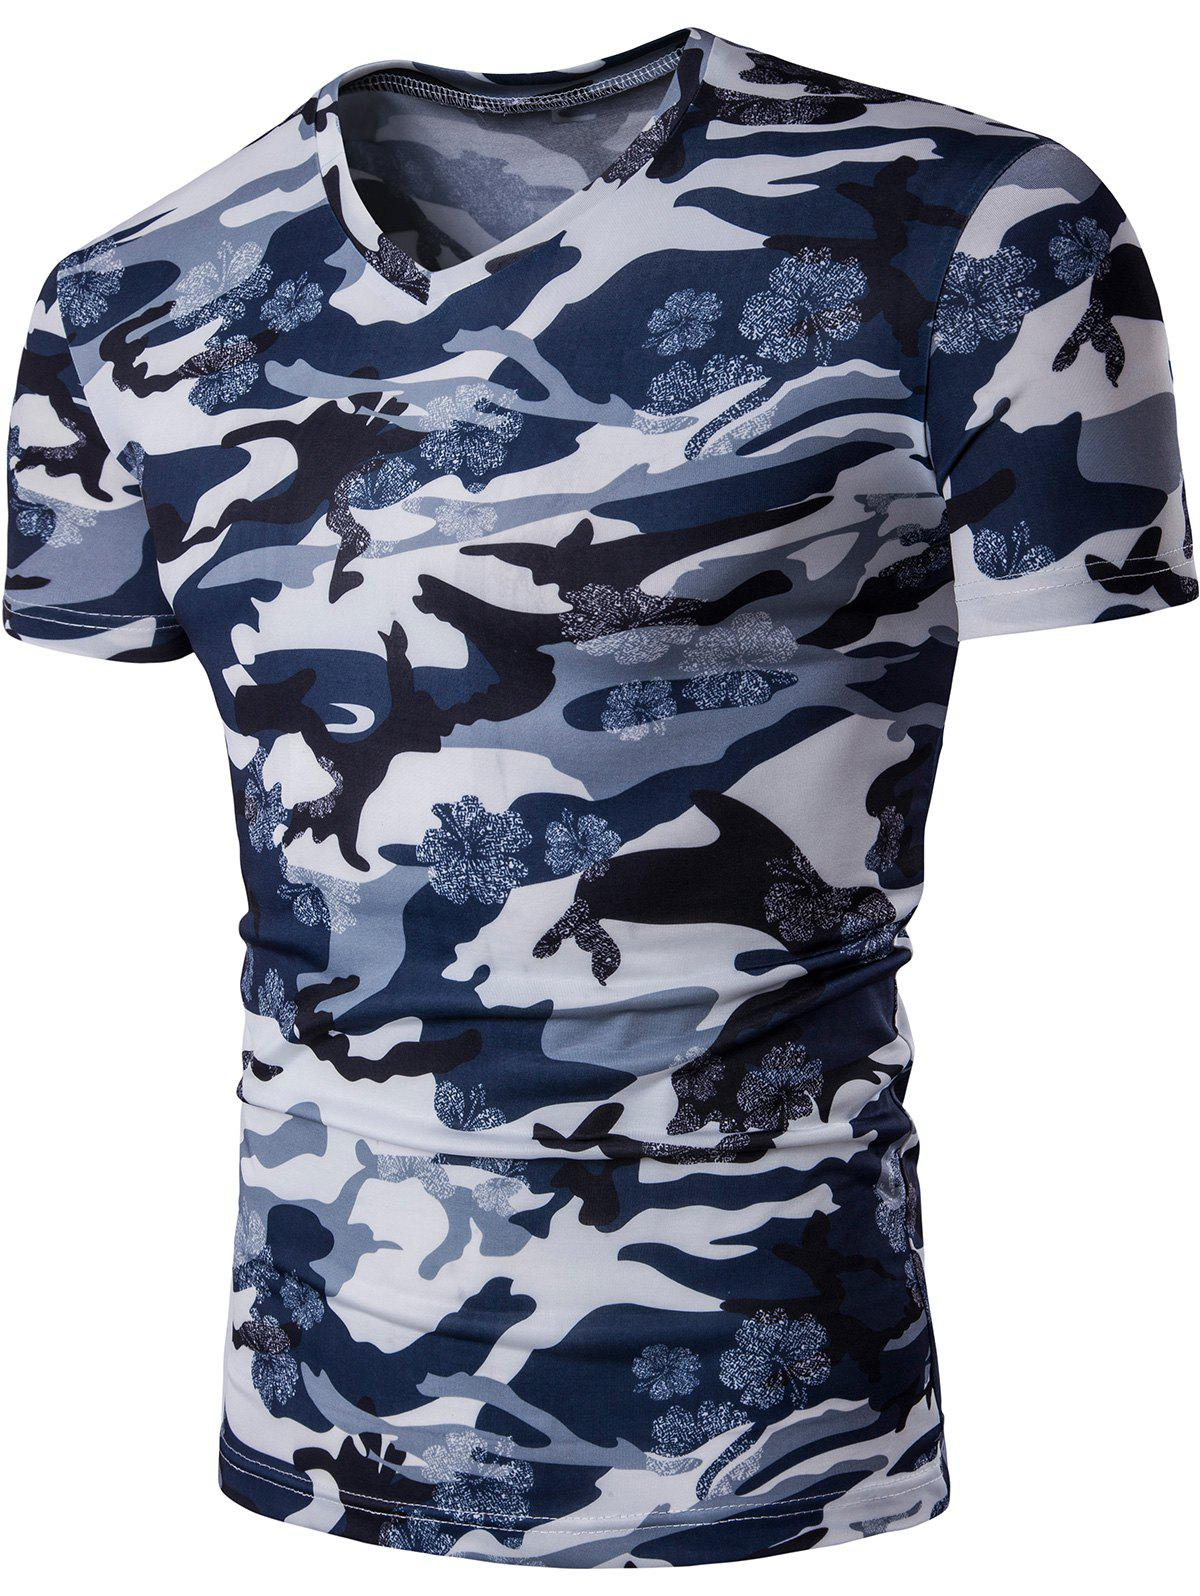 V Neck Floral Camouflage TeeMEN<br><br>Size: 5XL; Color: BLUE GRAY; Style: Casual; Material: Polyester,Spandex; Sleeve Length: Short; Collar: V-Neck; Pattern Type: Camouflage; Weight: 0.2000kg; Package Contents: 1 x Tee;